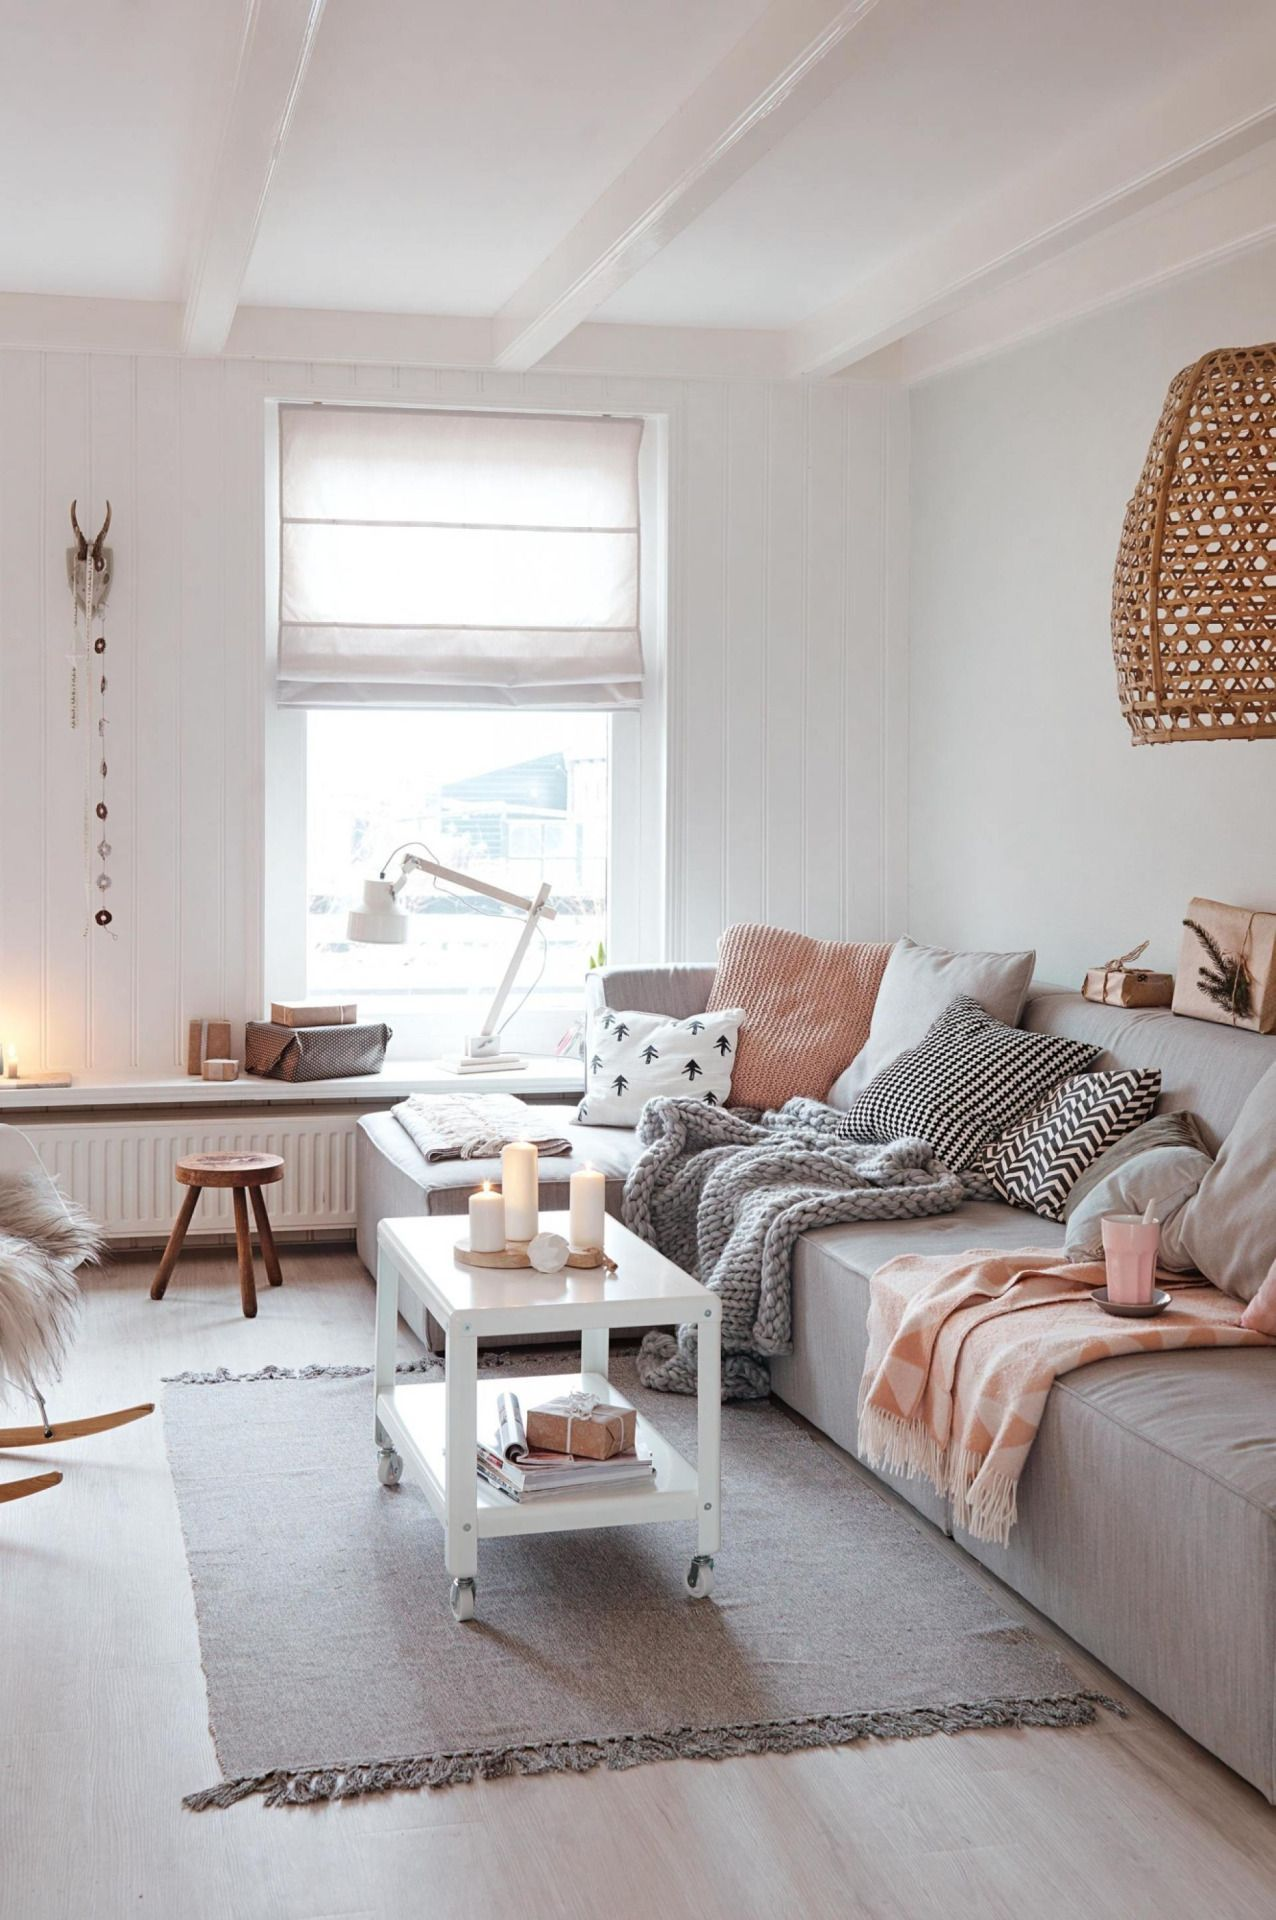 Warning These Are The Best Small Living Room Ideas Of The: Warning-These-Are-the-Best-Small-Living-Room-Ideas-of-the